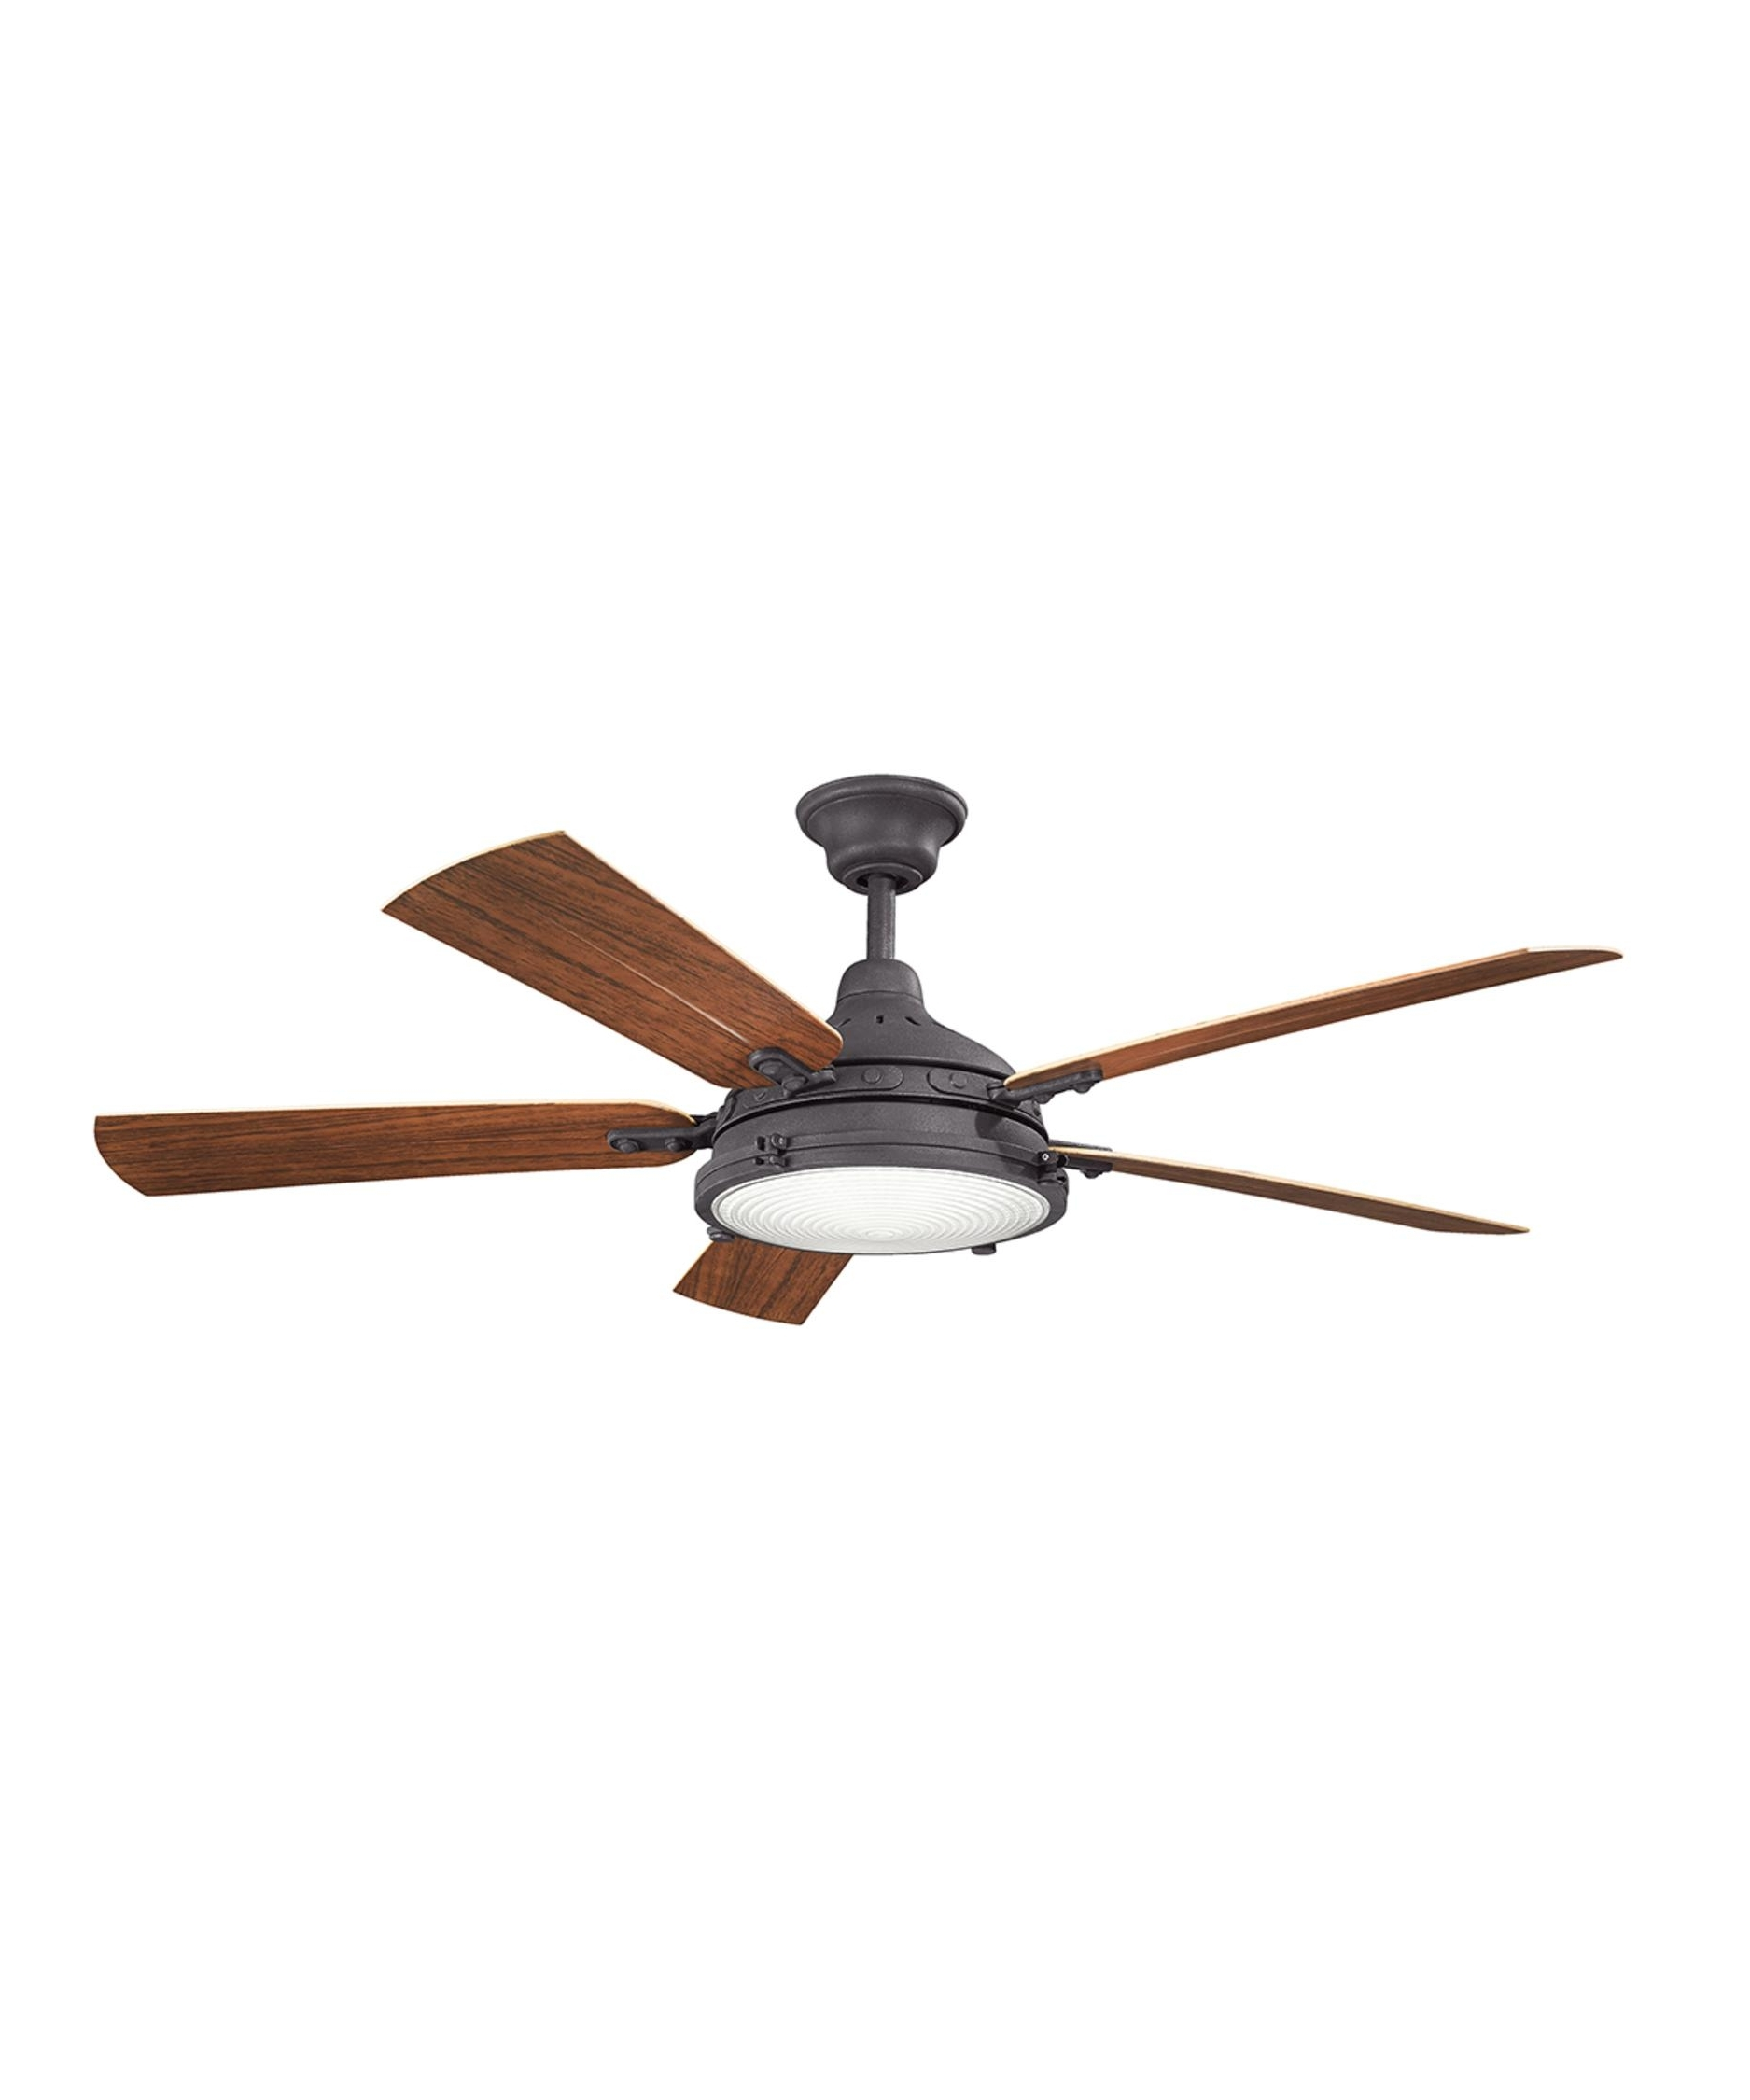 Outdoor Ceiling Fans At Kichler Throughout Trendy Kichler 310117 Hatteras Bay 60 Inch 5 Blade Ceiling Fan (View 14 of 20)